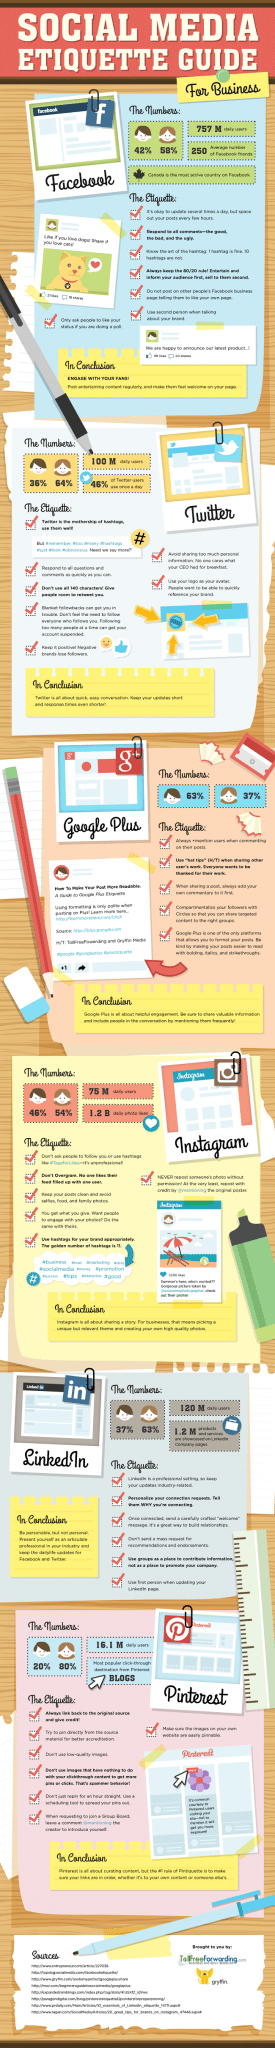 Photo of Social Media Etiquette Guide For Business [INFOGRAPHIC]